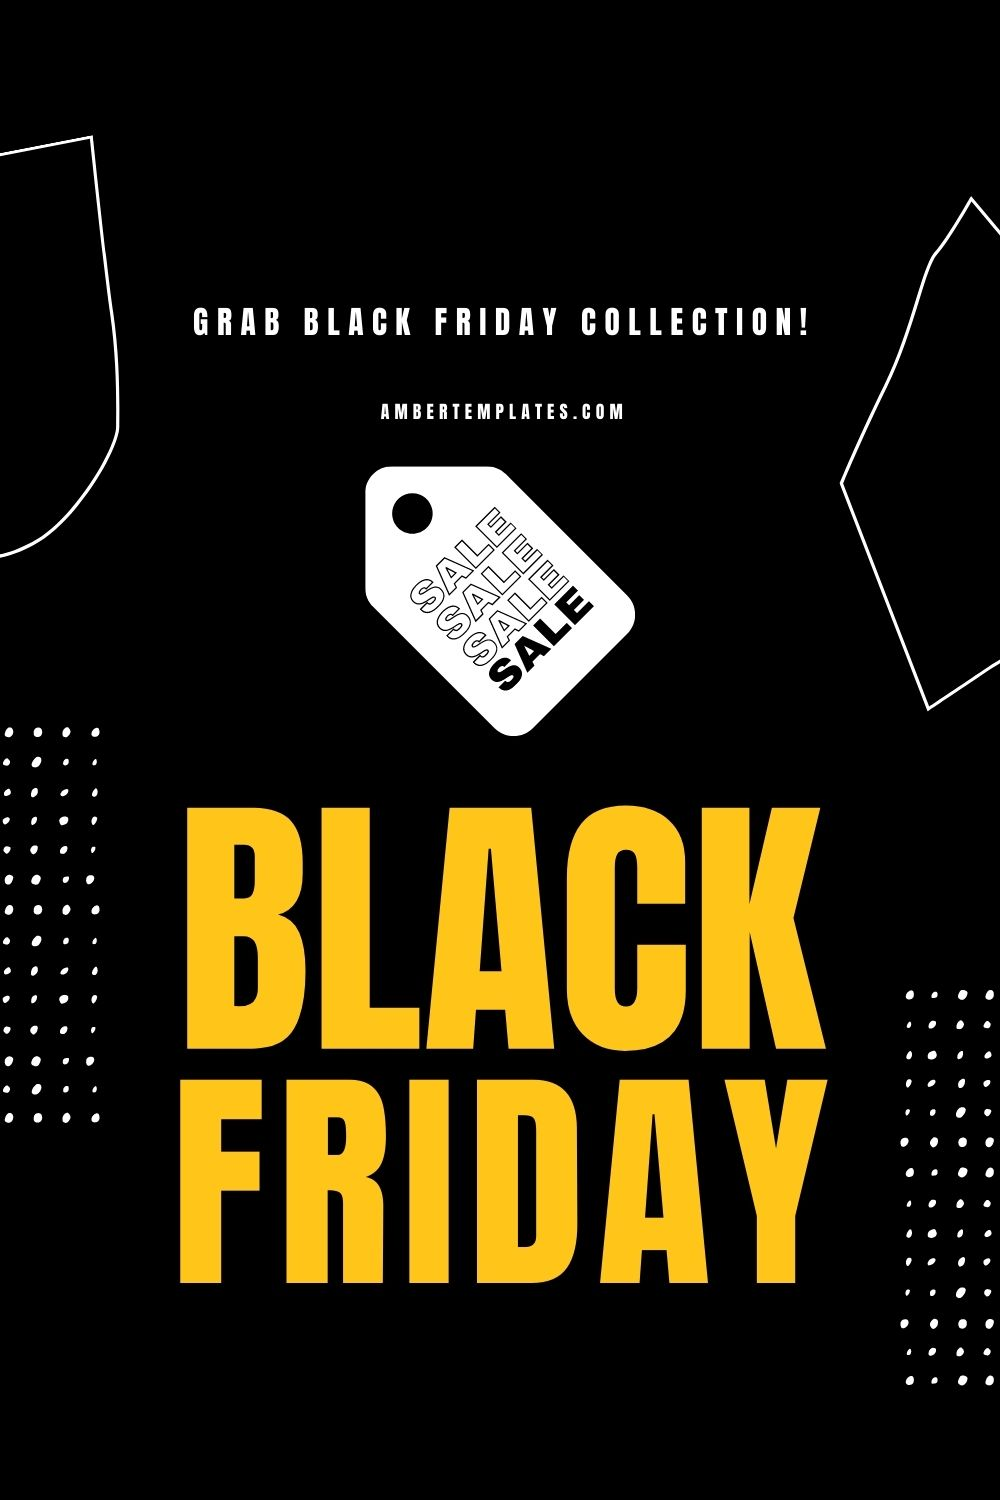 Black Friday Design Ideas Template Collection In 2020 Black Friday Design Black Friday Sale Design Black Friday